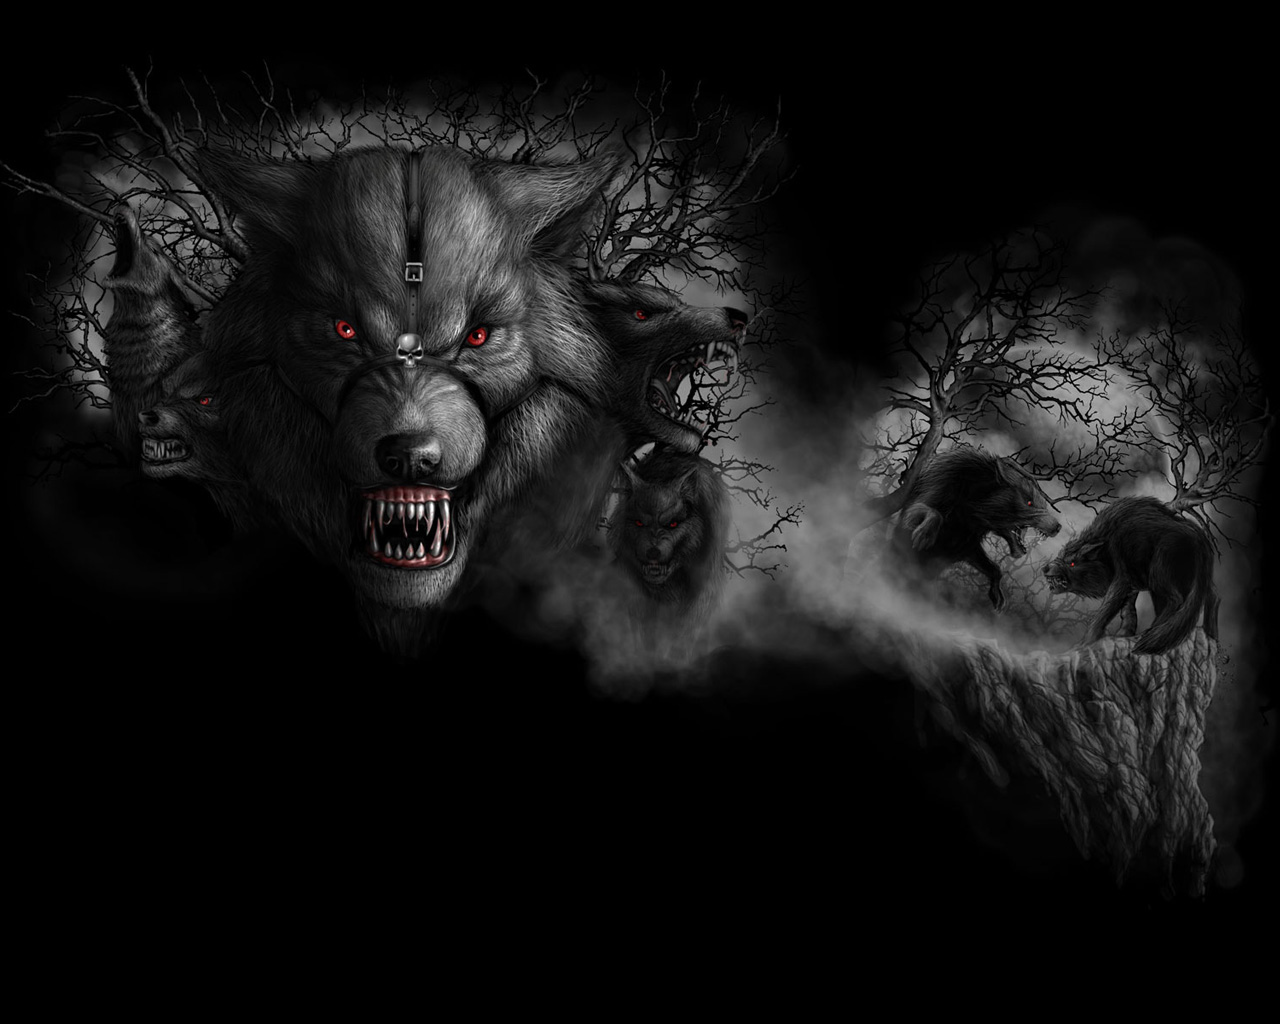 dark gothic lion wallpaper - photo #9